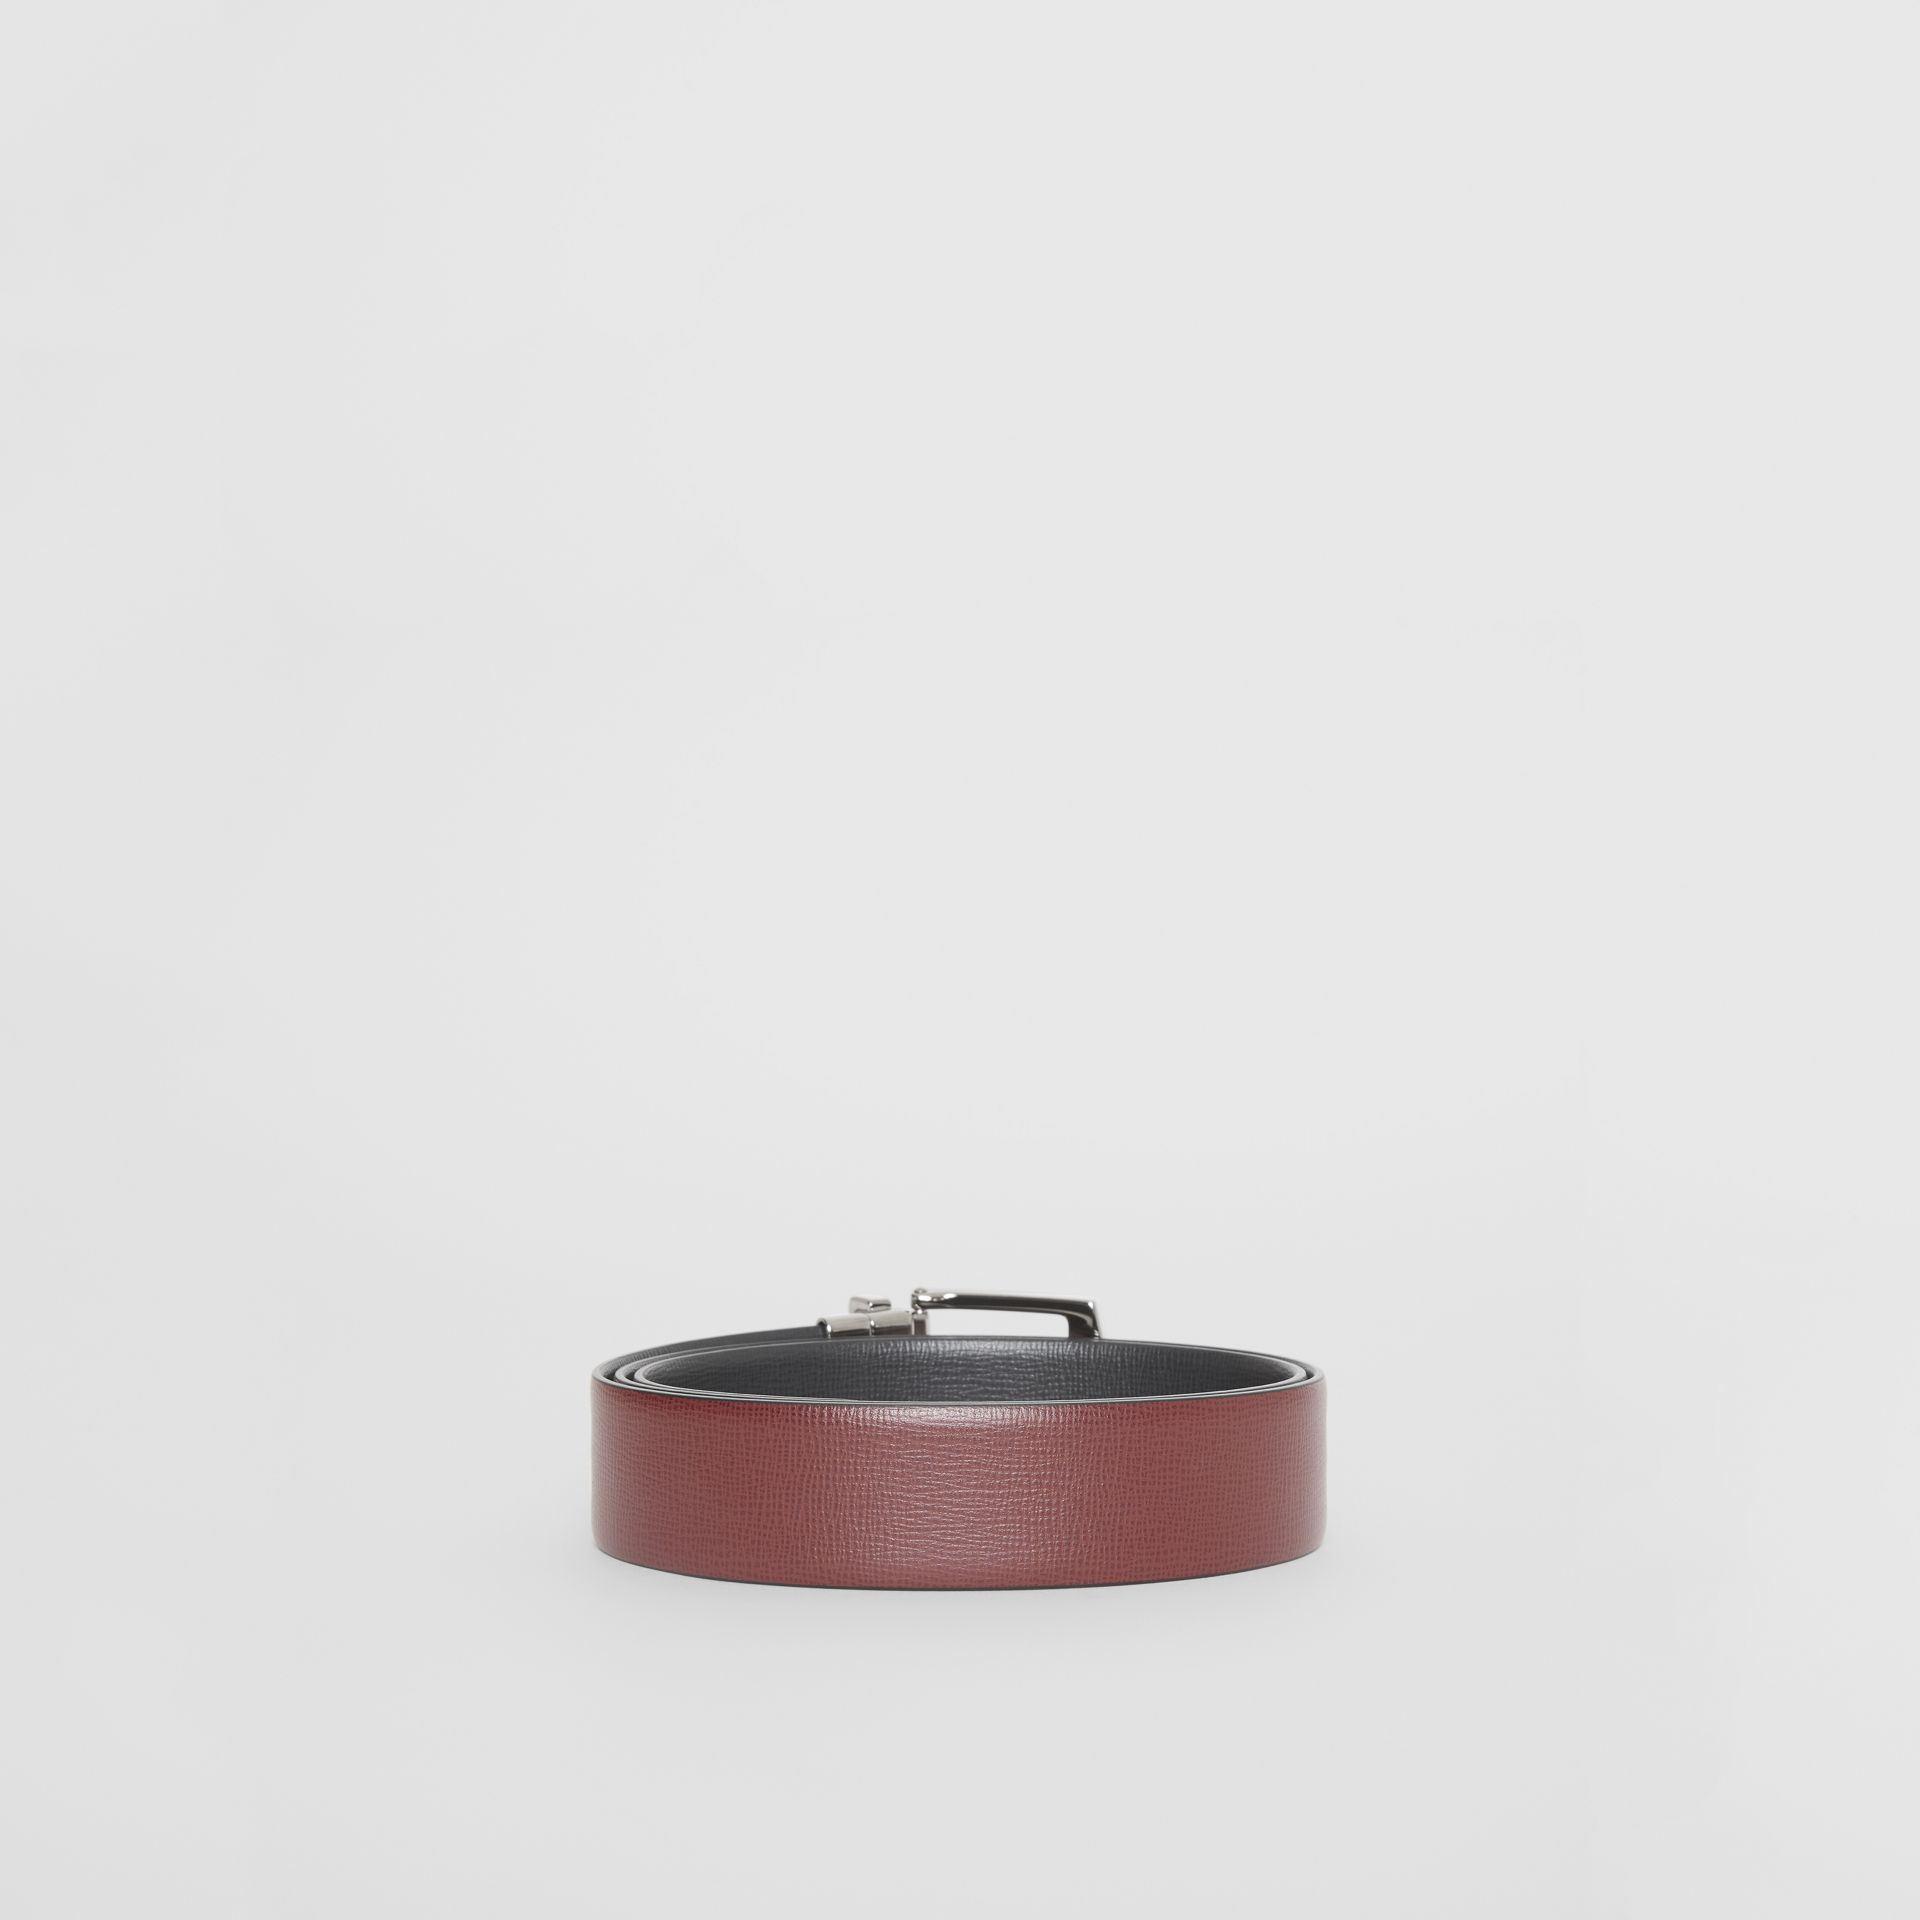 Reversible London Leather Belt in Burgundy Red/black - Men | Burberry Canada - gallery image 5